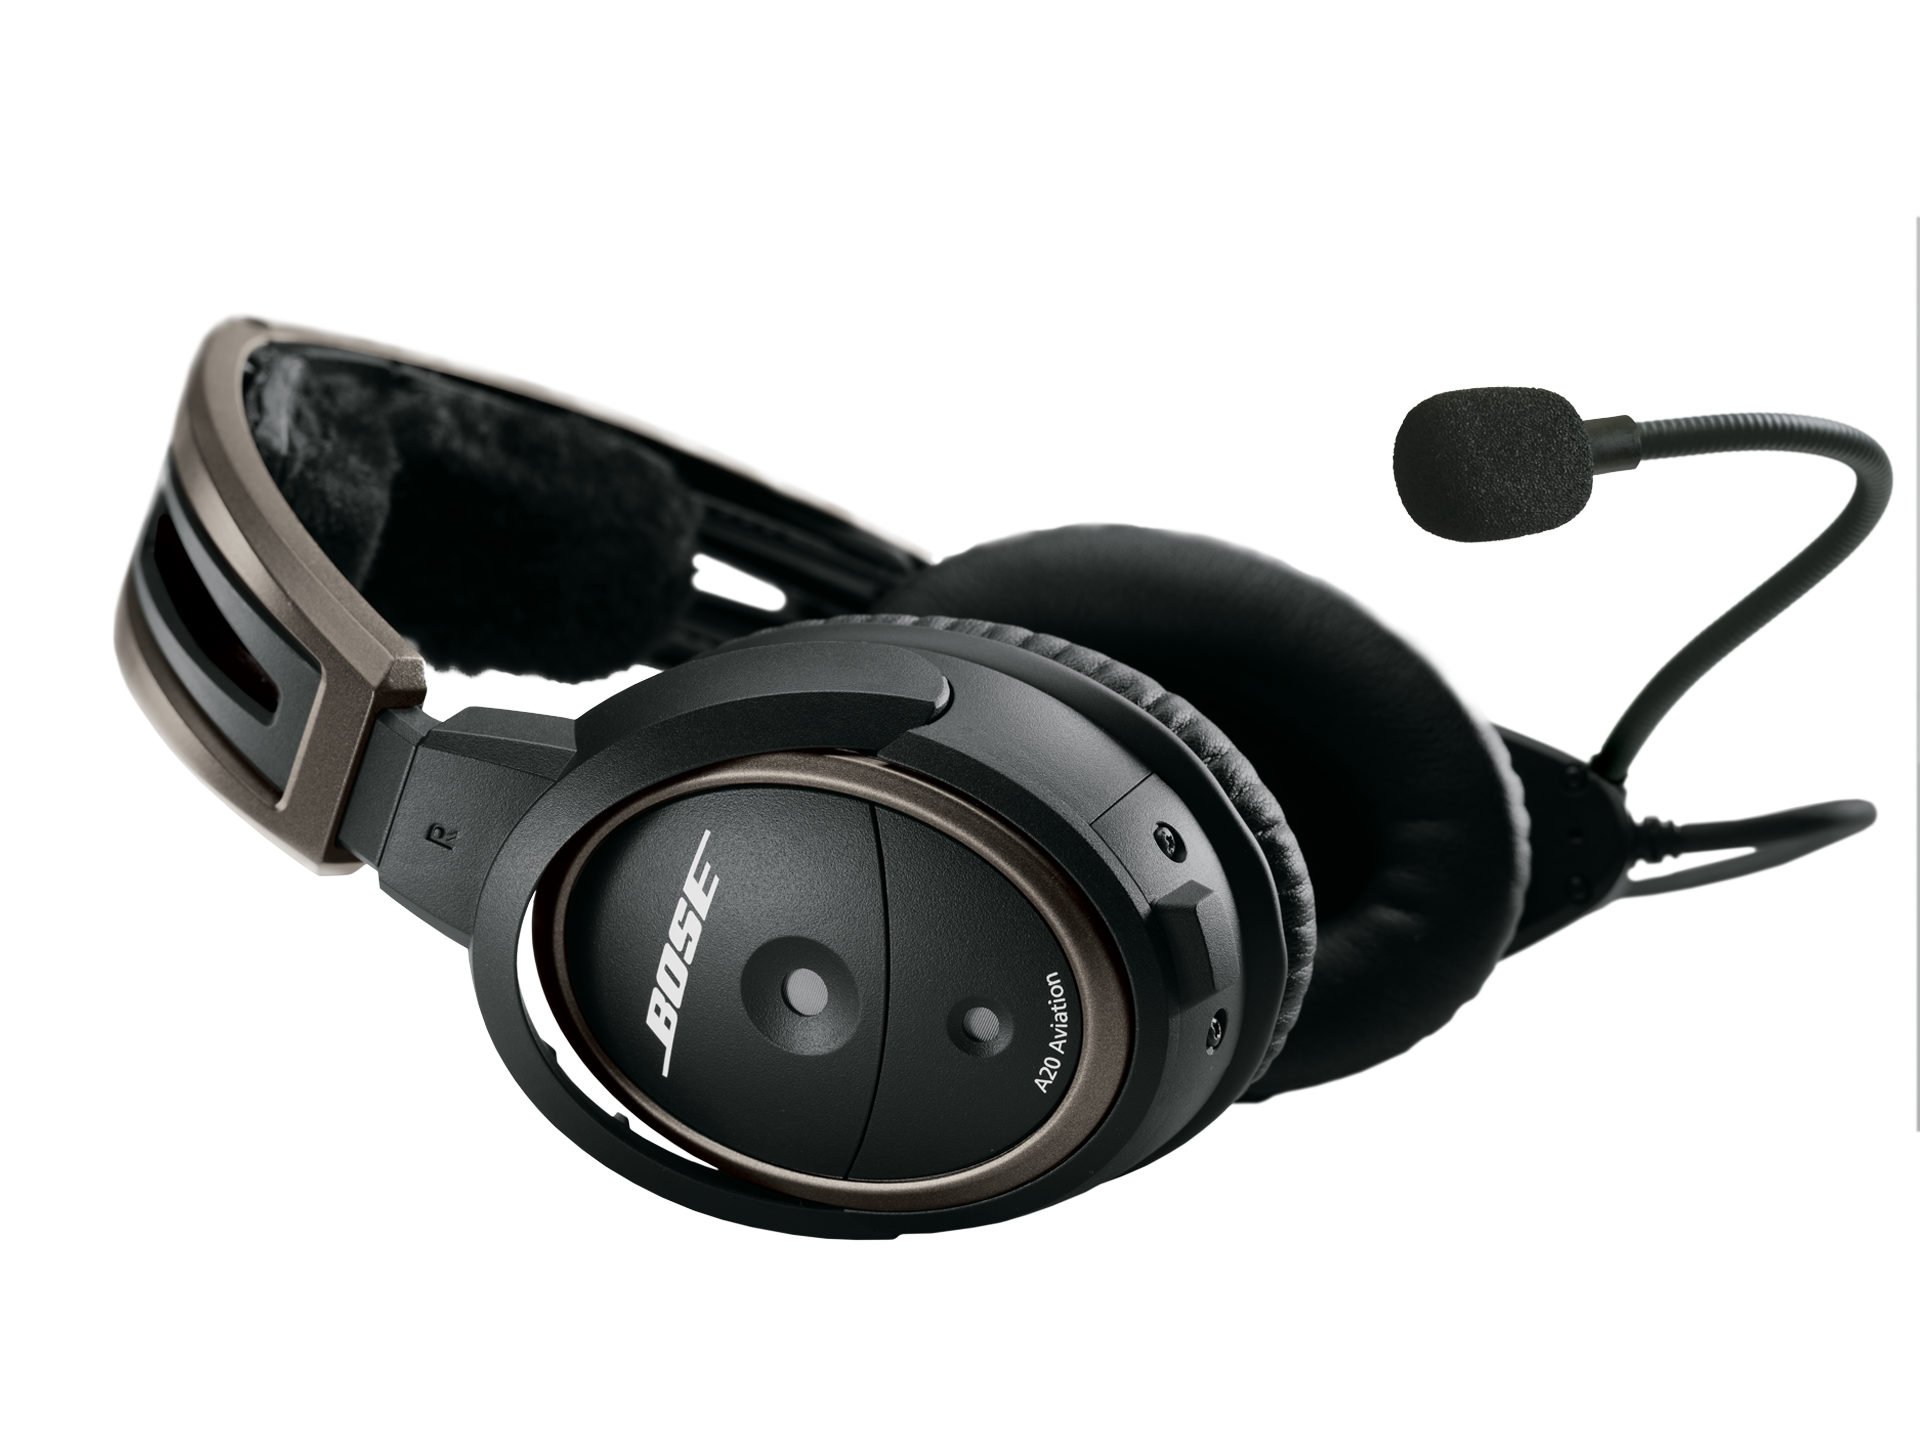 Bose A20 Headset with 6-pin LEMO Plug, Non-Bluetooth, Panel and Battery Powered, Straight Cable, Hi Impedance (324843-2040)